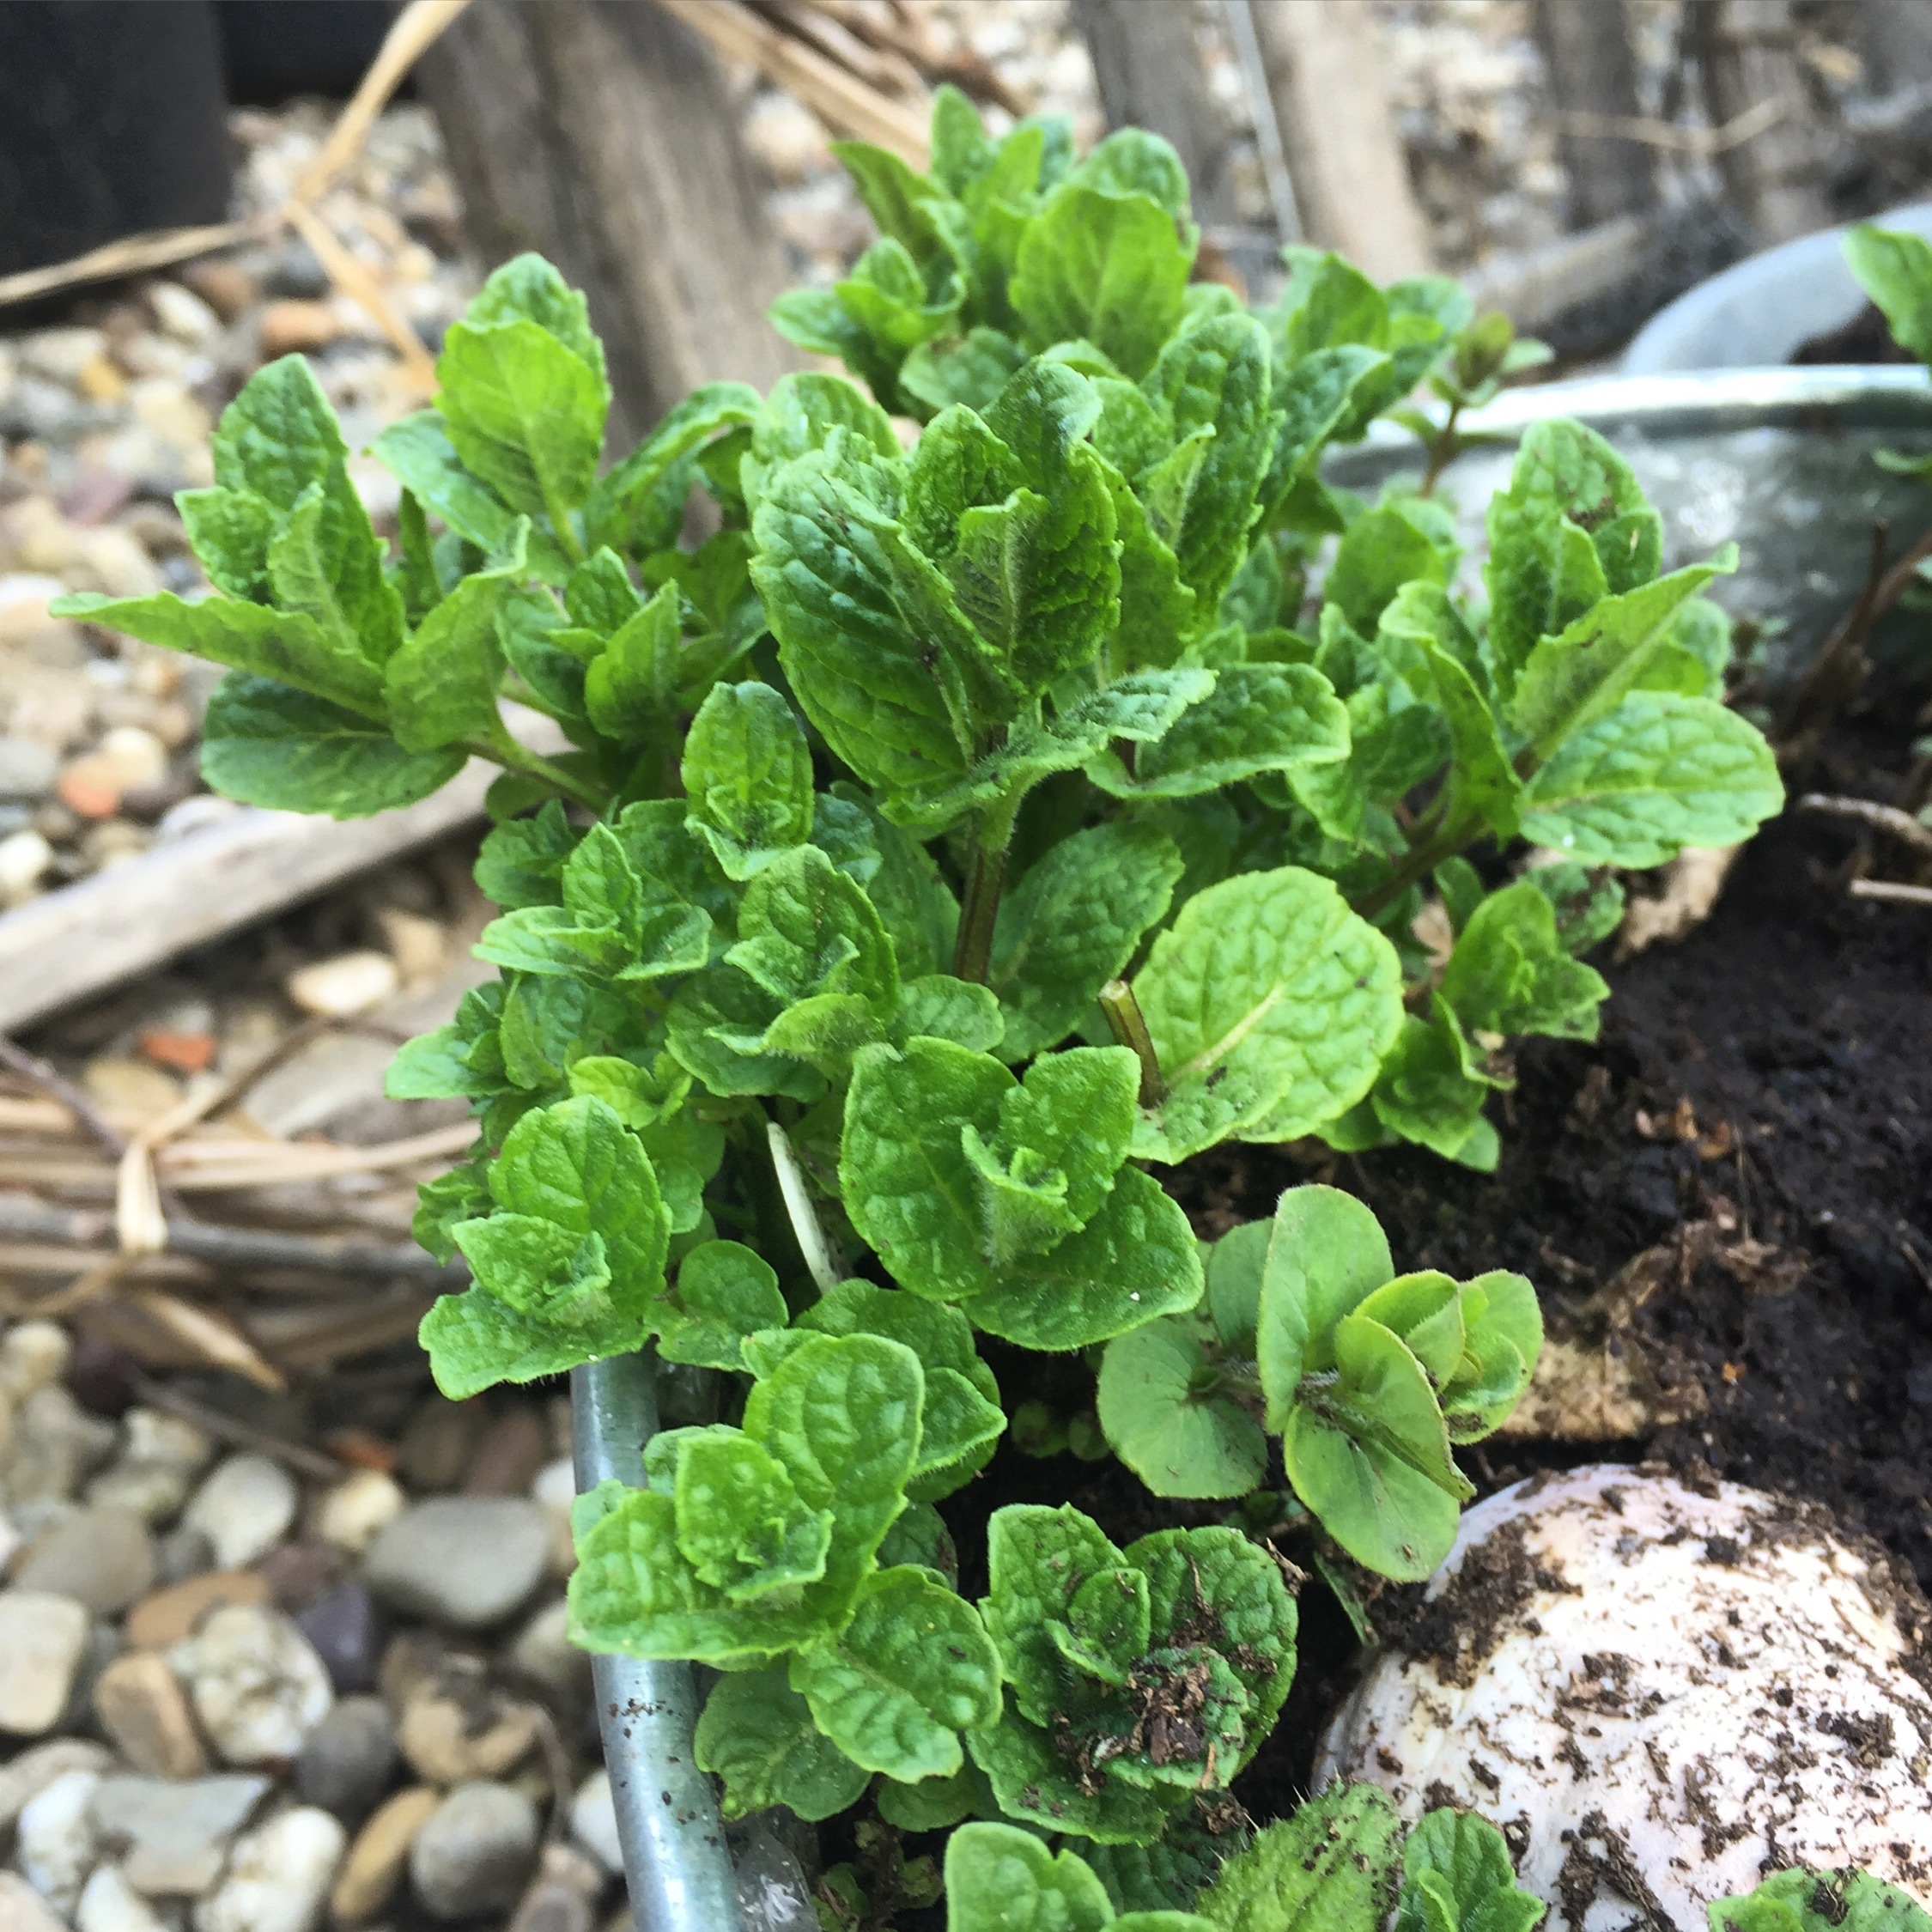 REF:62  'Mentha .spp'  Menthe, mint  The leaves can be used to make a strong infusion of peppermint tea. Add torn leaves to strawberries, rice, couscous & salads.